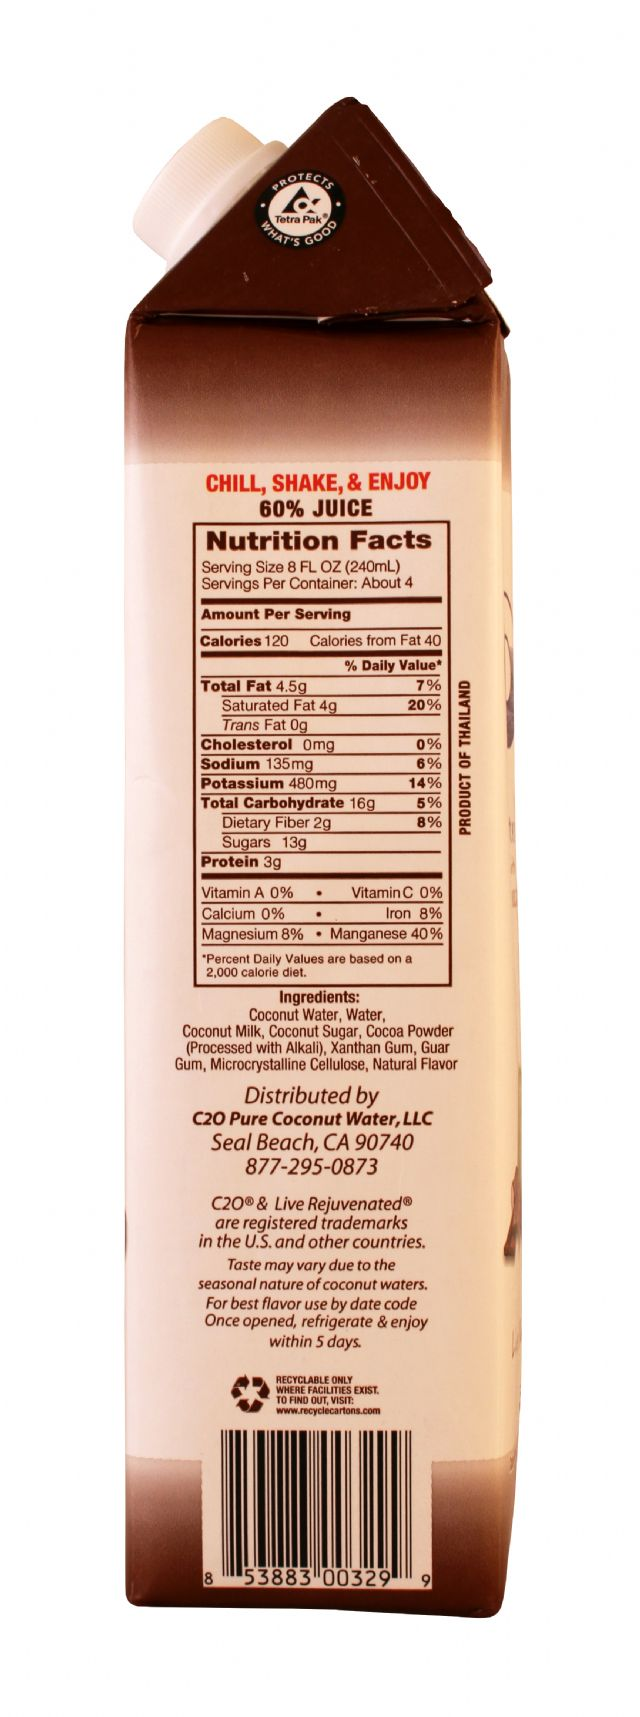 C2O Pure Coconut Water: C2O CocoChoc Facts